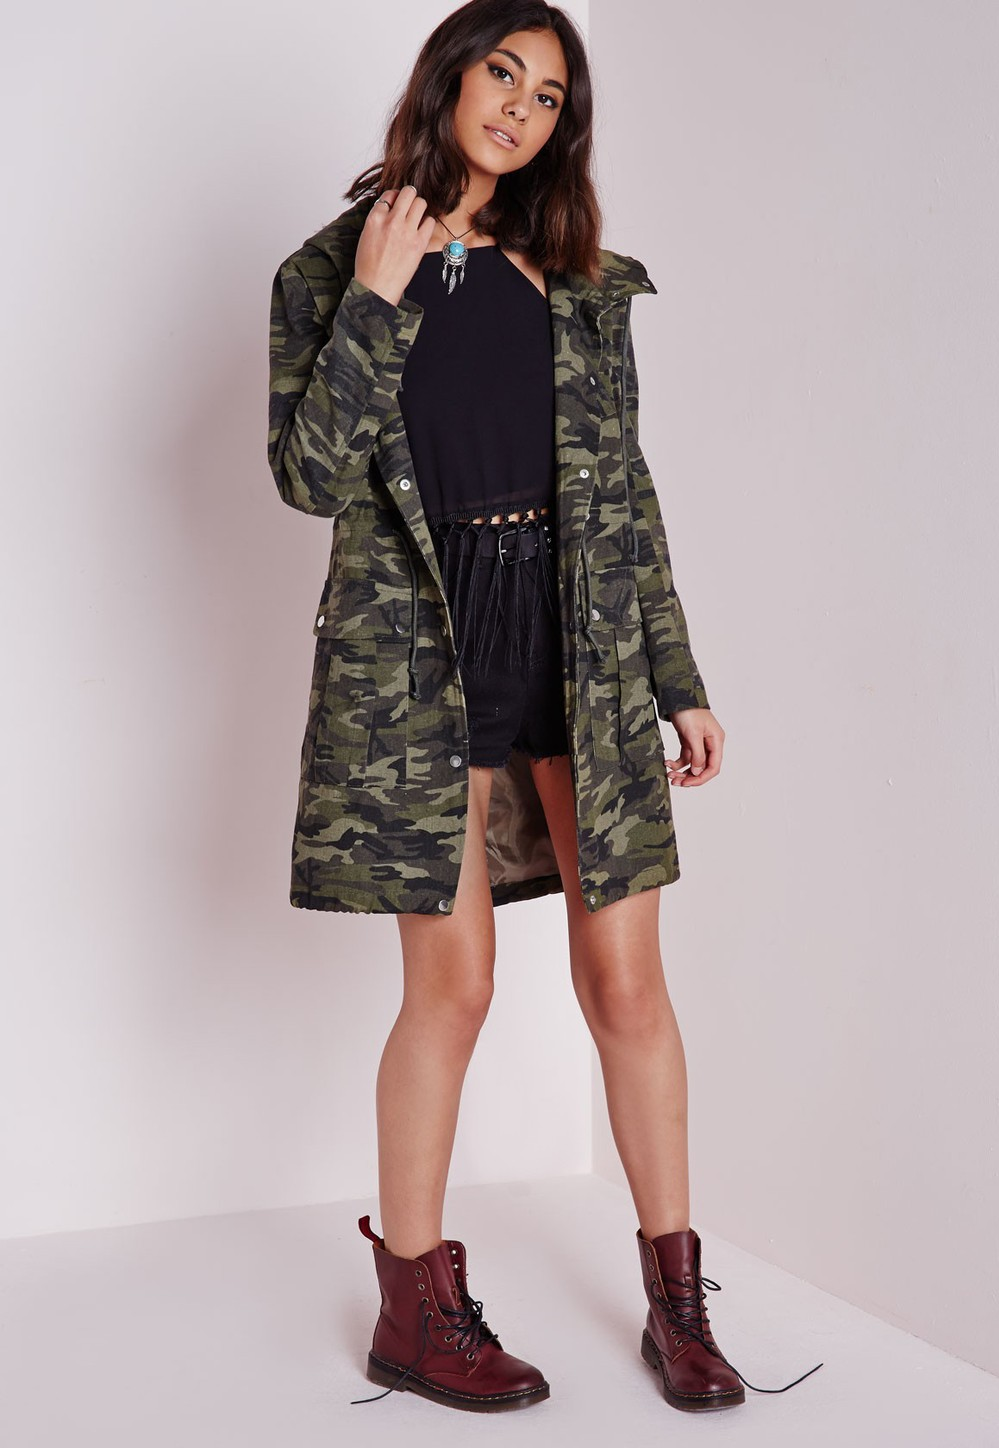 online store 16c96 a58c0 Women's Military Camo Parka Jacket / Fashion Wholesale Camo Parka Jacket -  Buy Digital Camo Jacket,Military Style Jackets Fashion,Womens Military ...